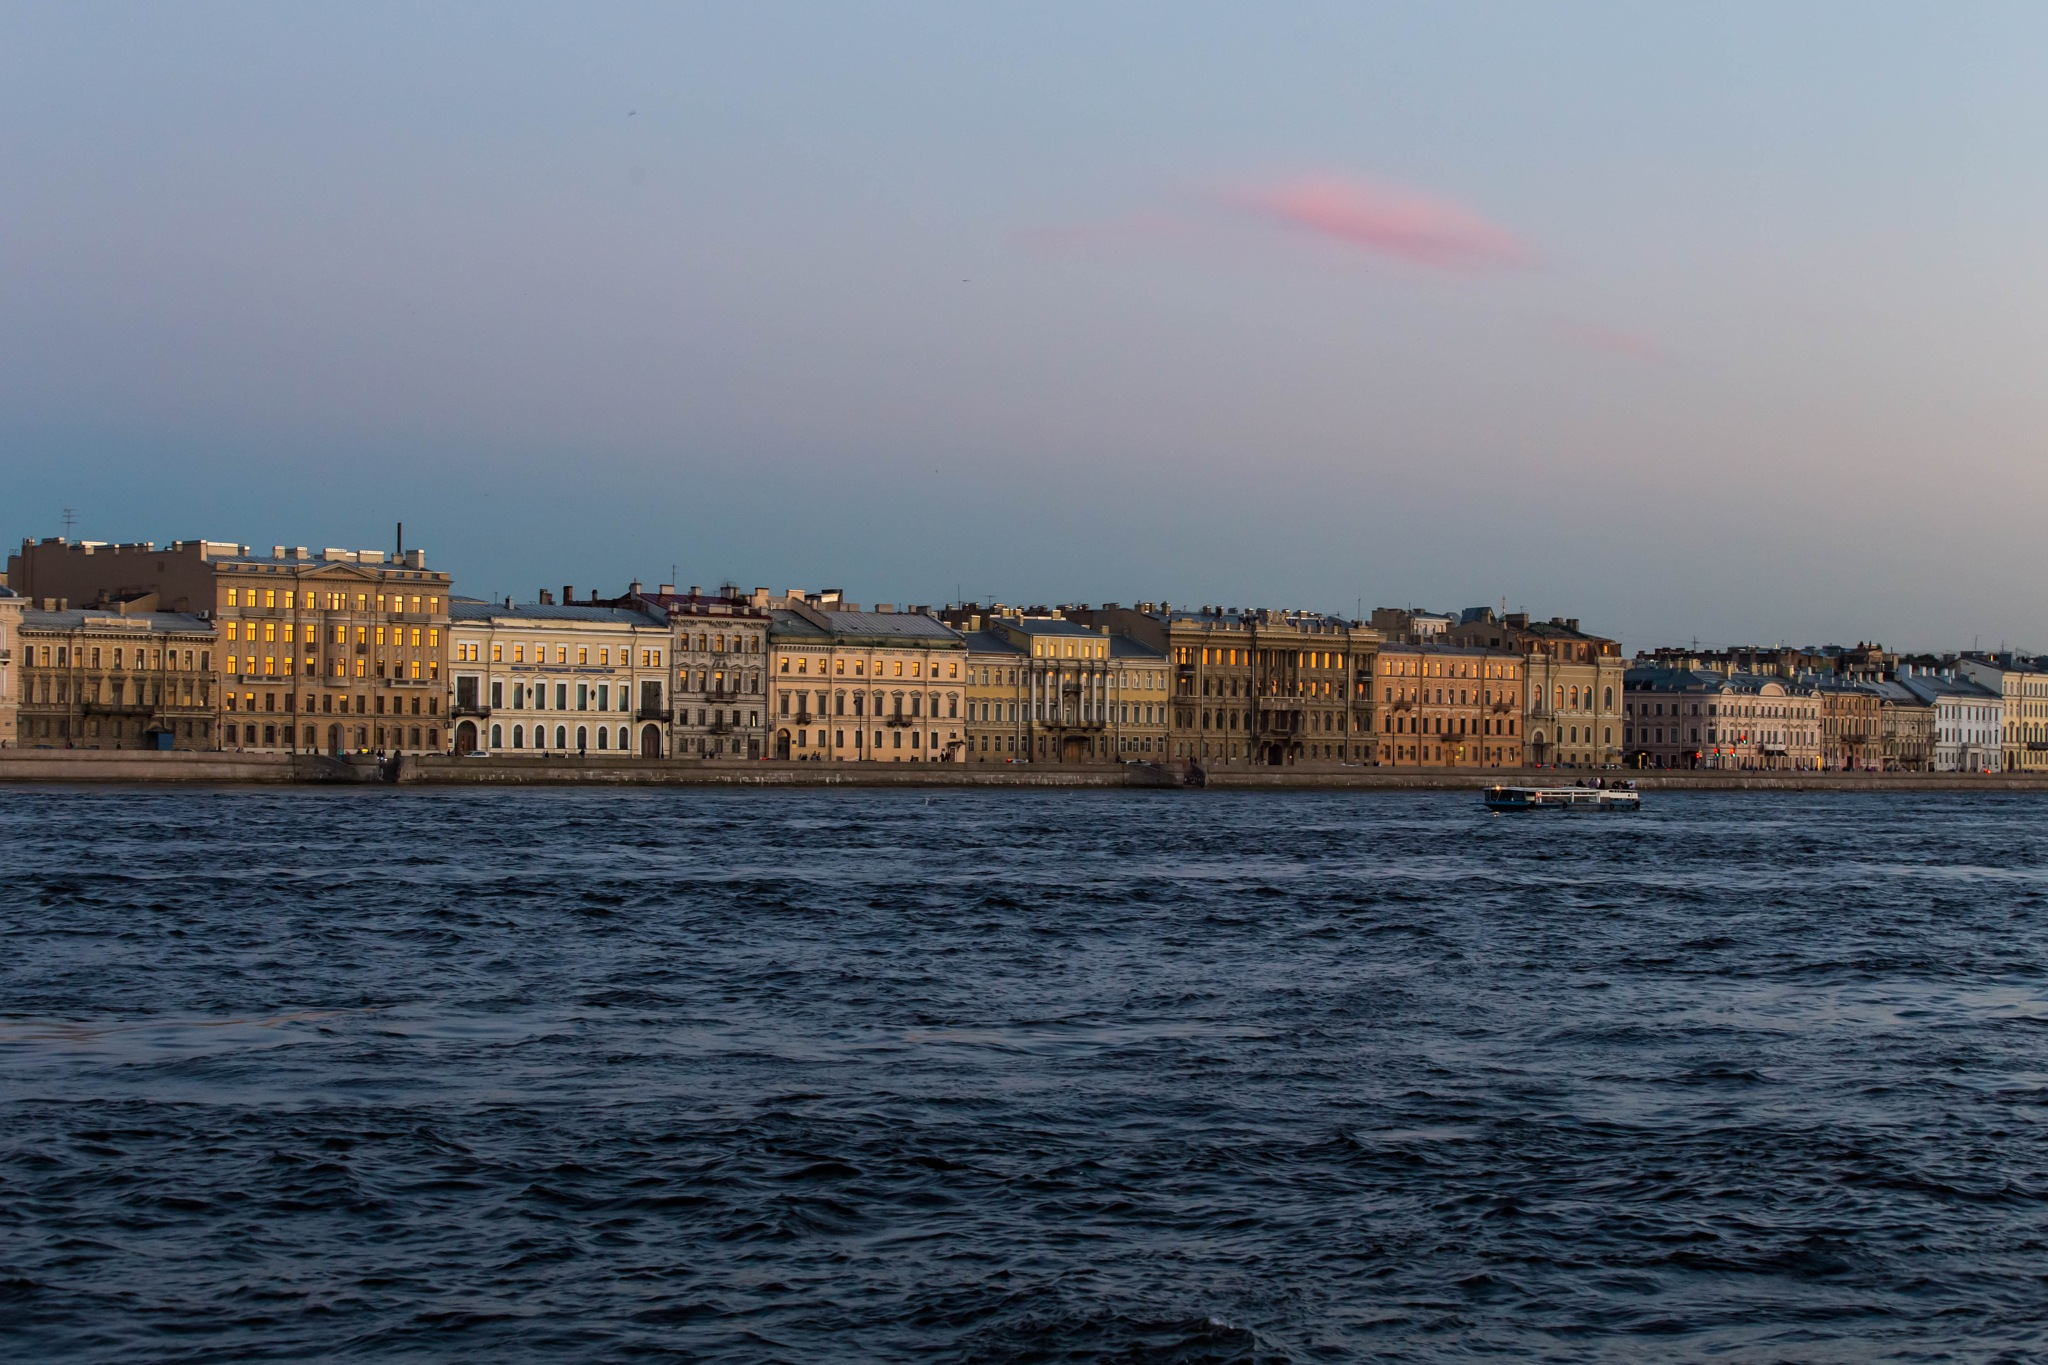 St. Petersburg Embankment by aquareele